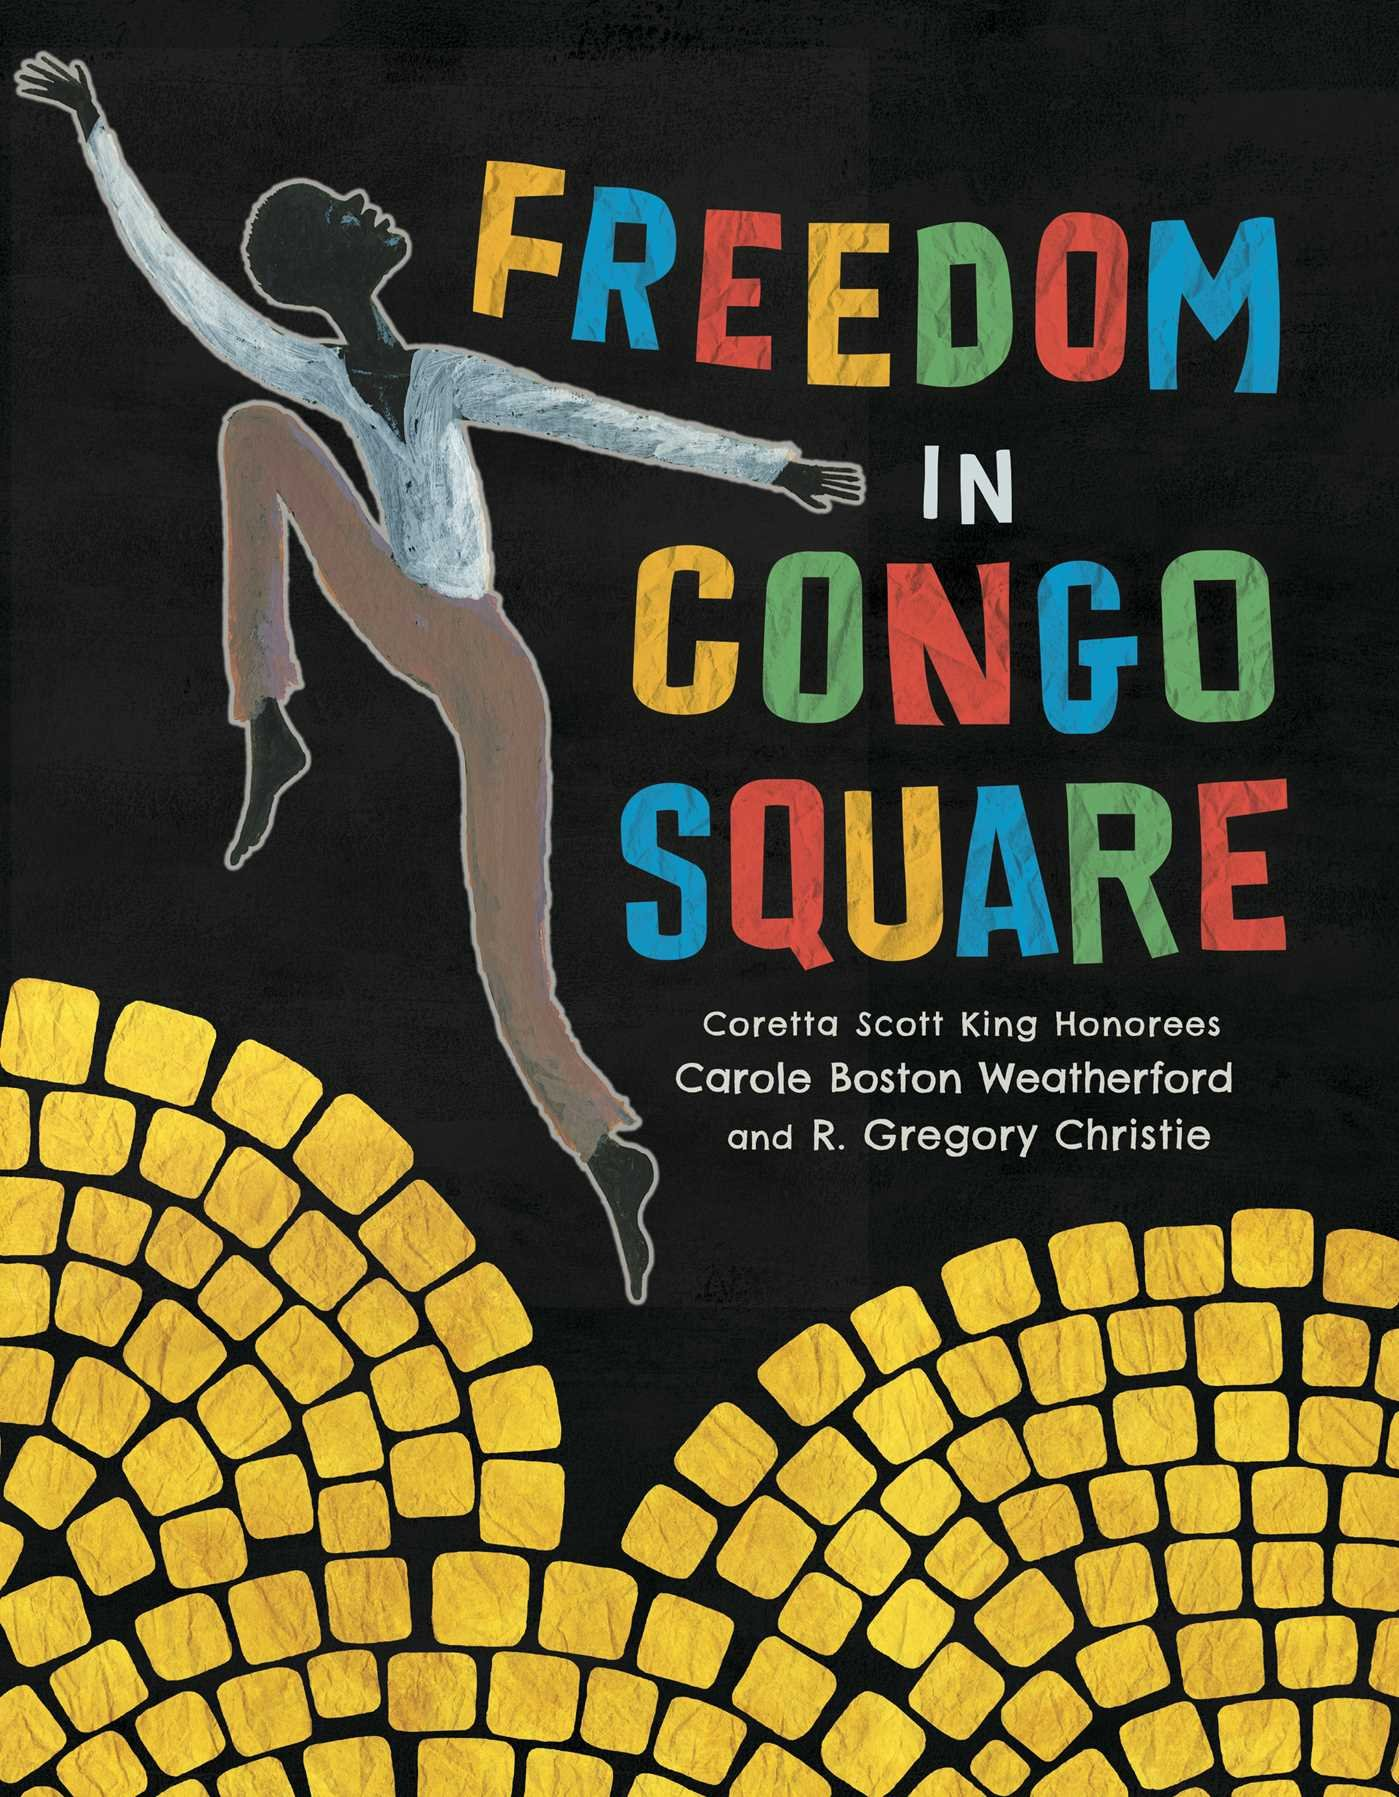 Freedom in Congo Square – Carole Boston Weatherford